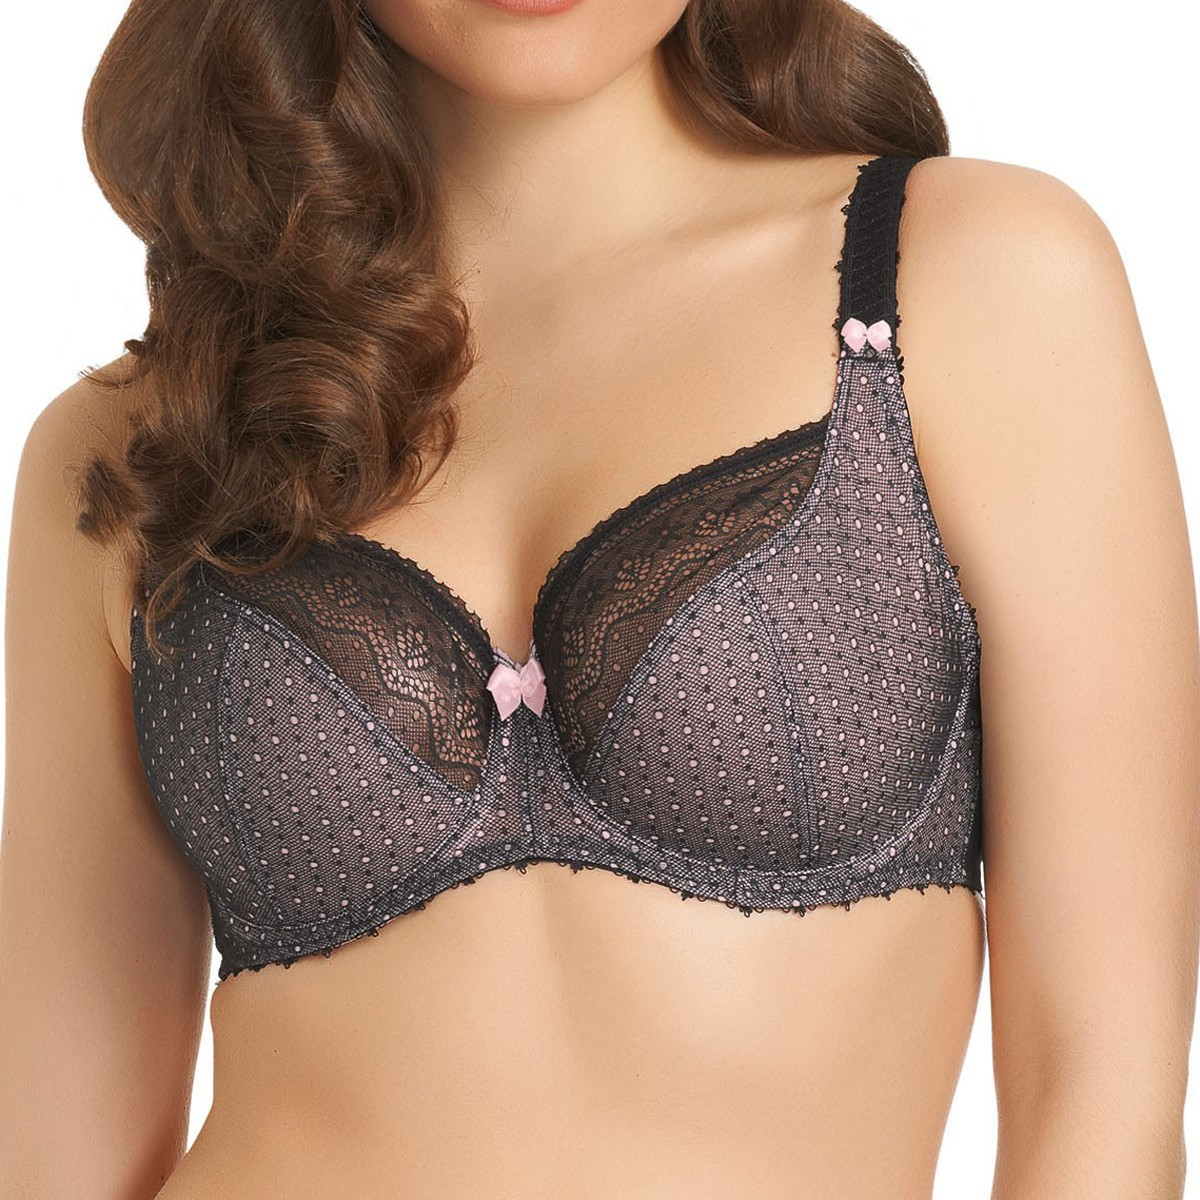 Freya Gem Underwired Balcony Bra - Black